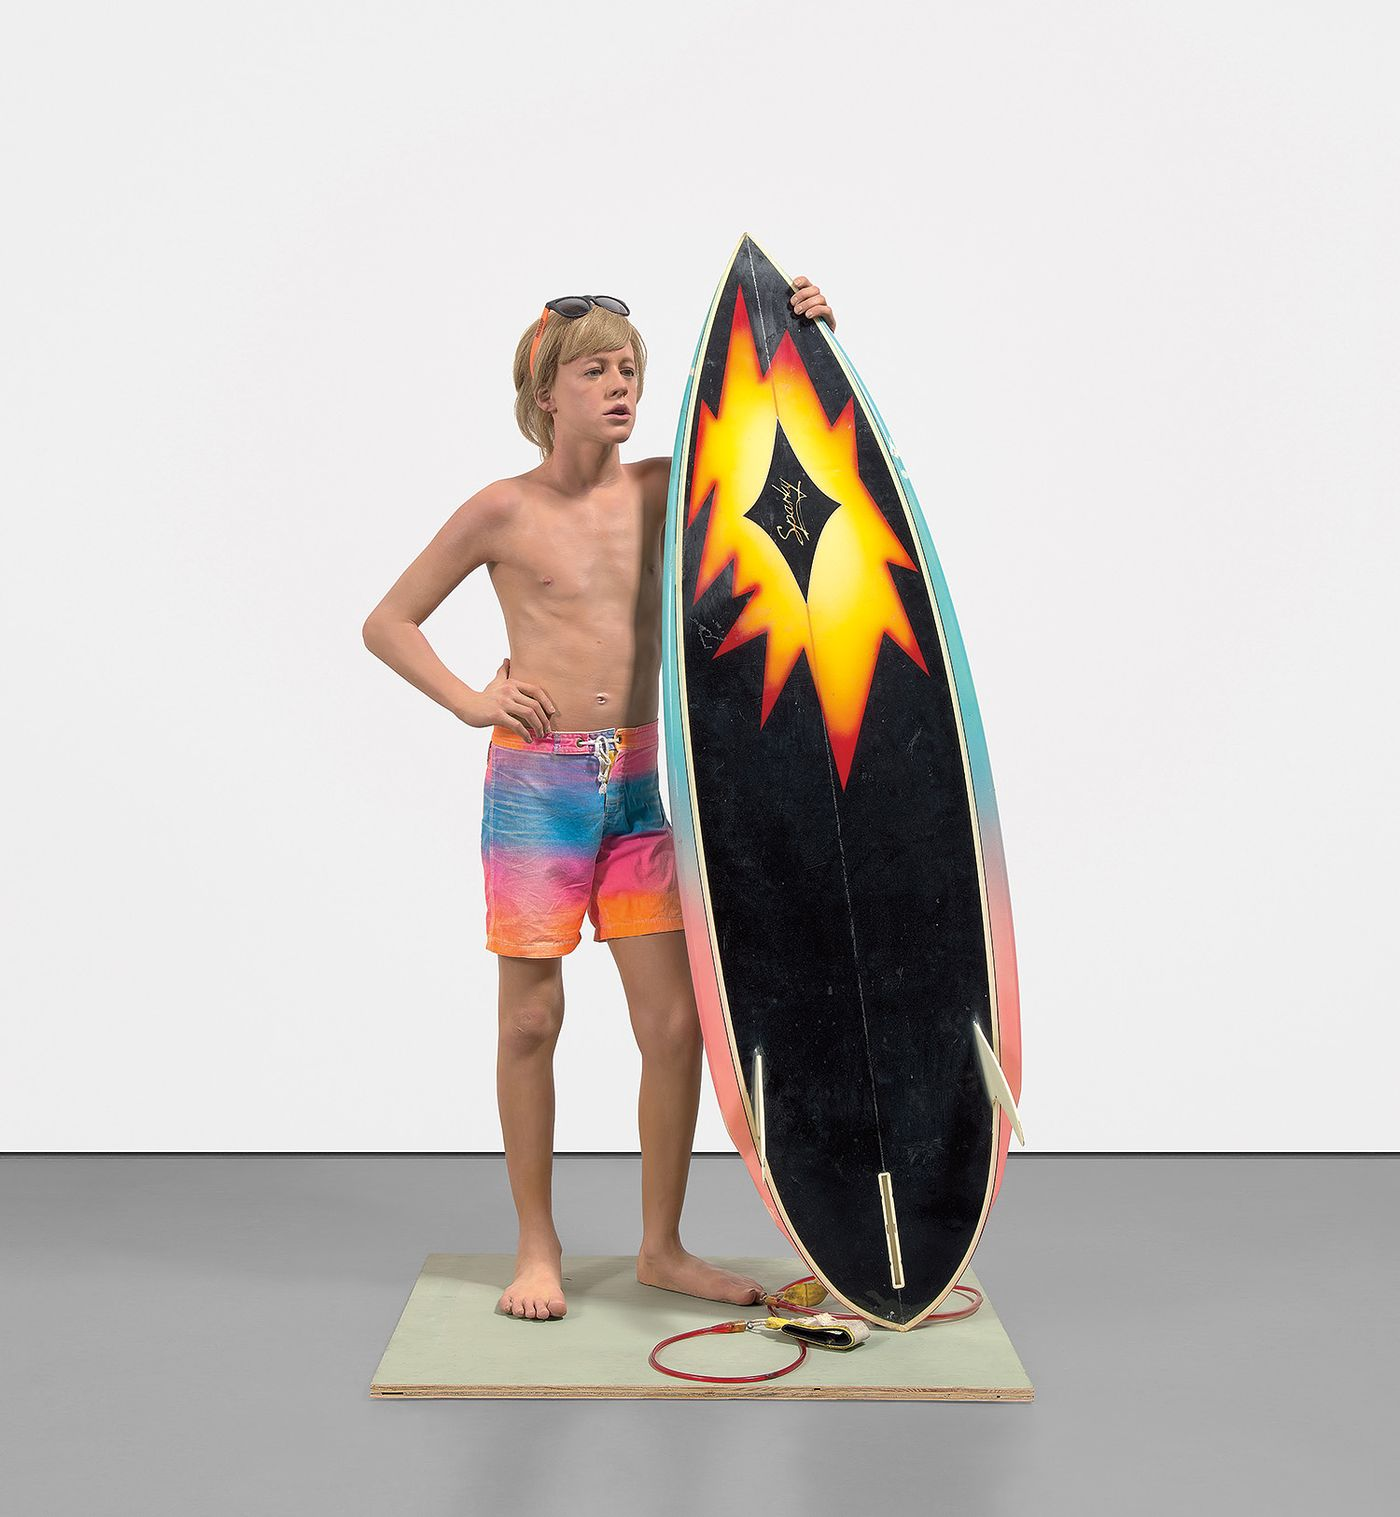 Emblematic of the artist's oeuvre in the 1980s, 'Surfer' uses California cool to examine the deeper anxiety embedded in American life.